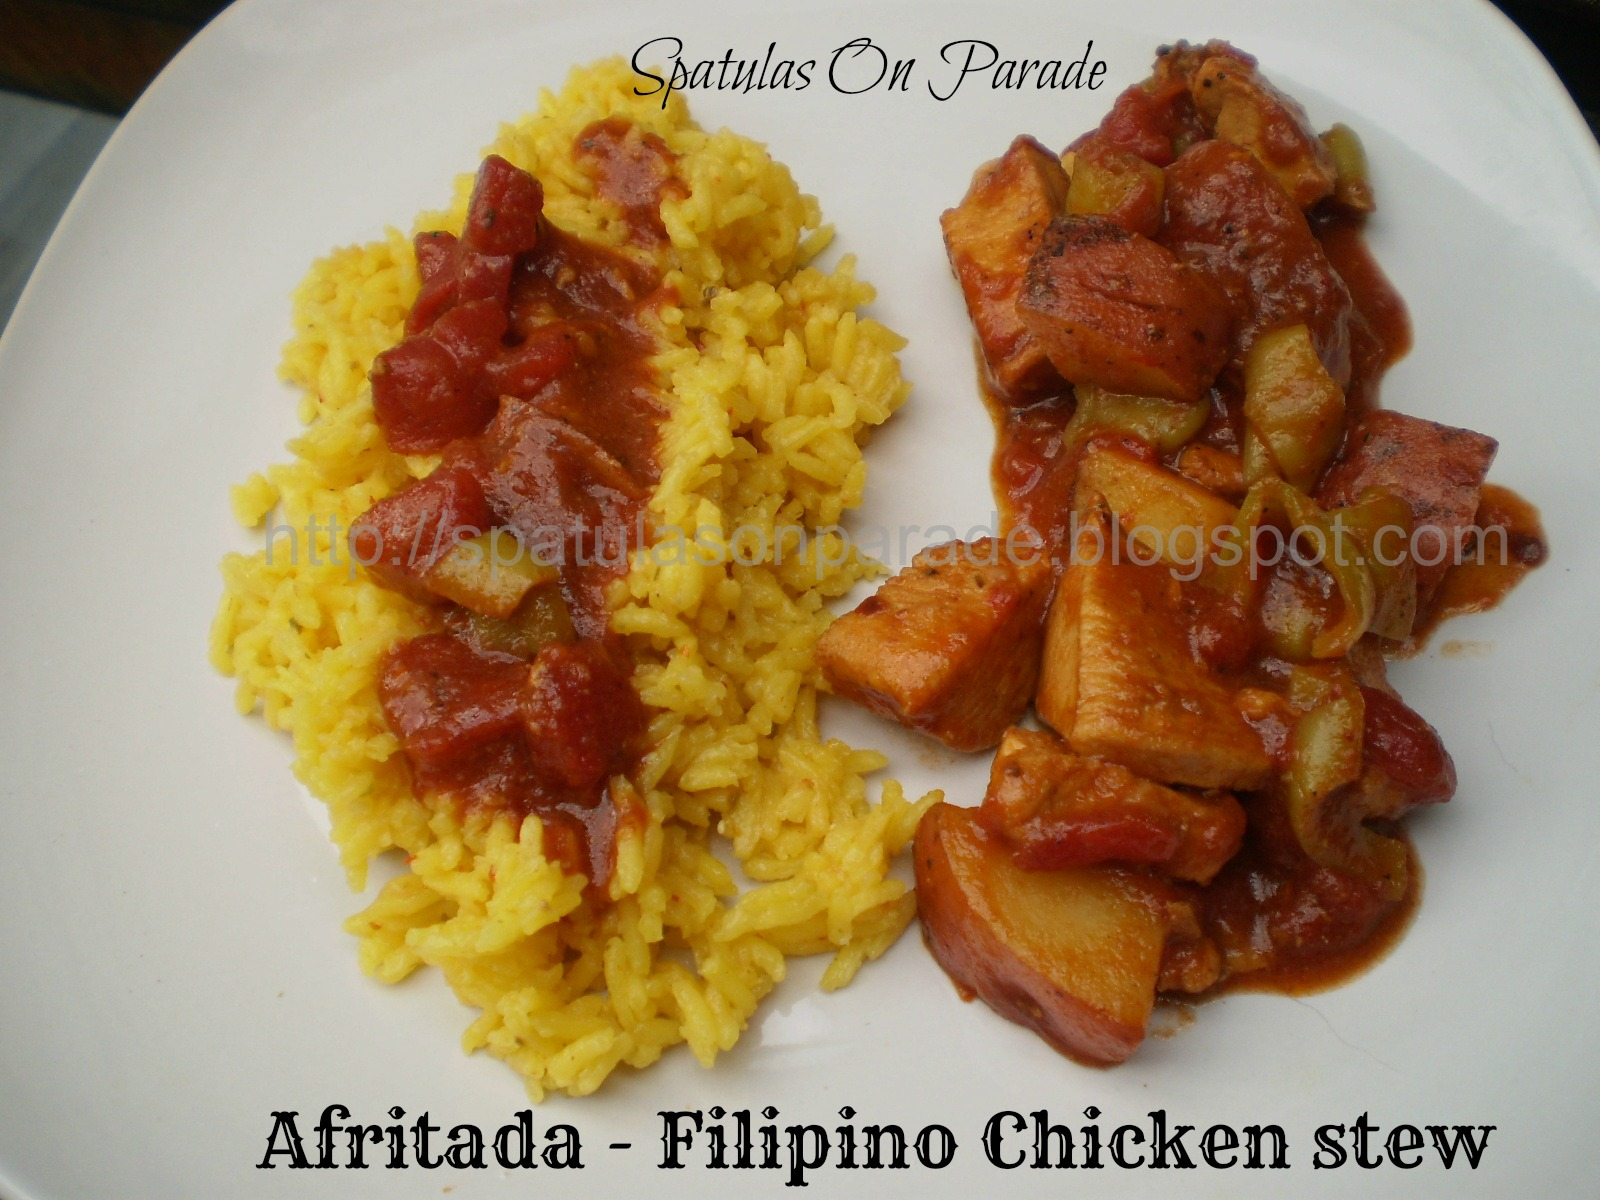 Discussion on this topic: Chicken Cordon Bleu Casserole, chicken-cordon-bleu-casserole/